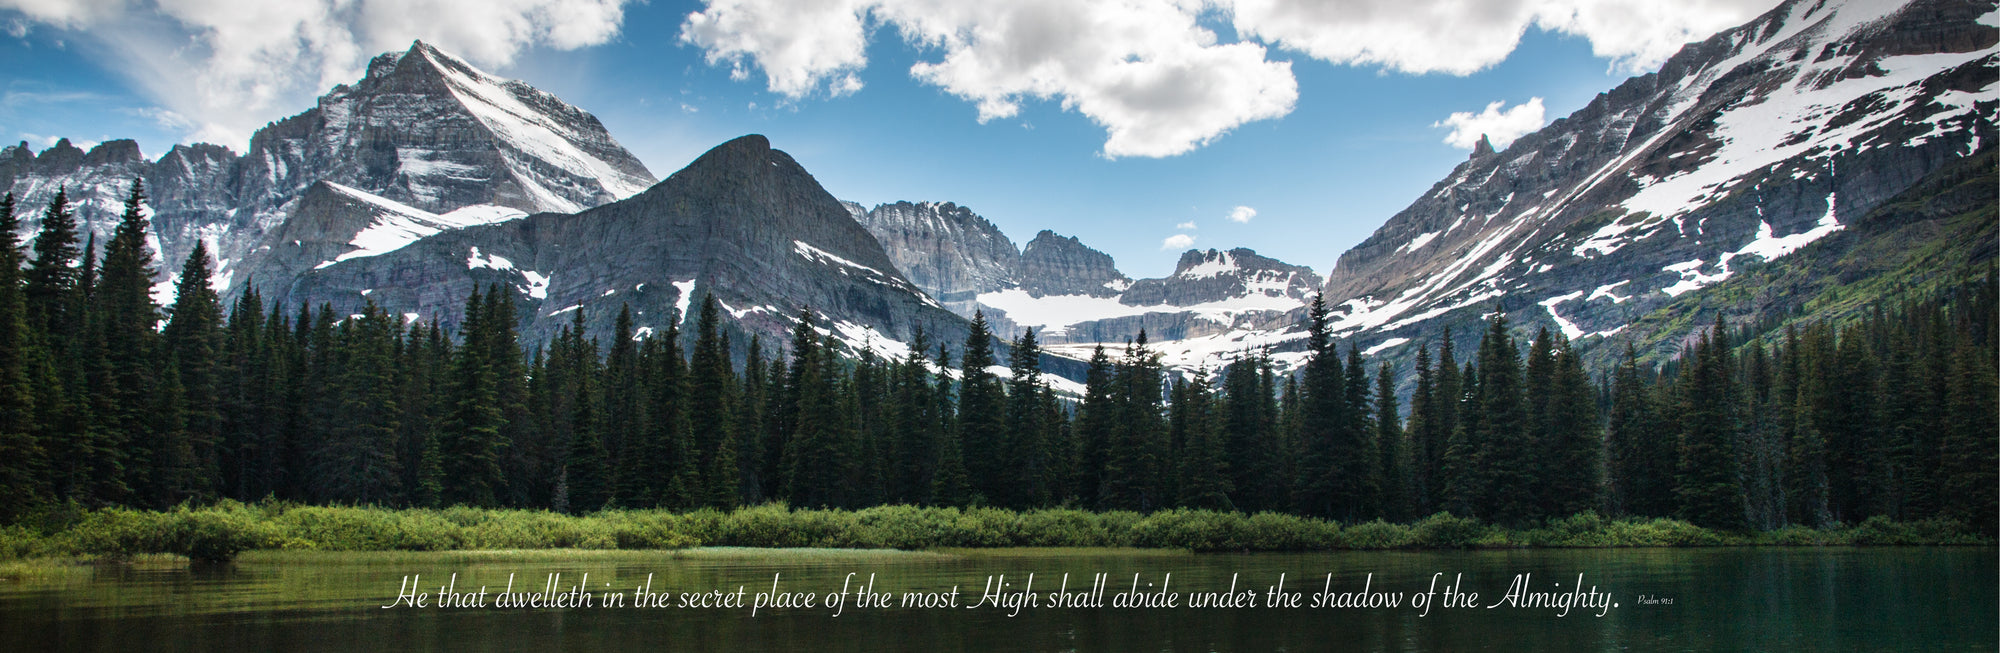 Snowy mountains in summer time at Glacier National Park with scripture verse